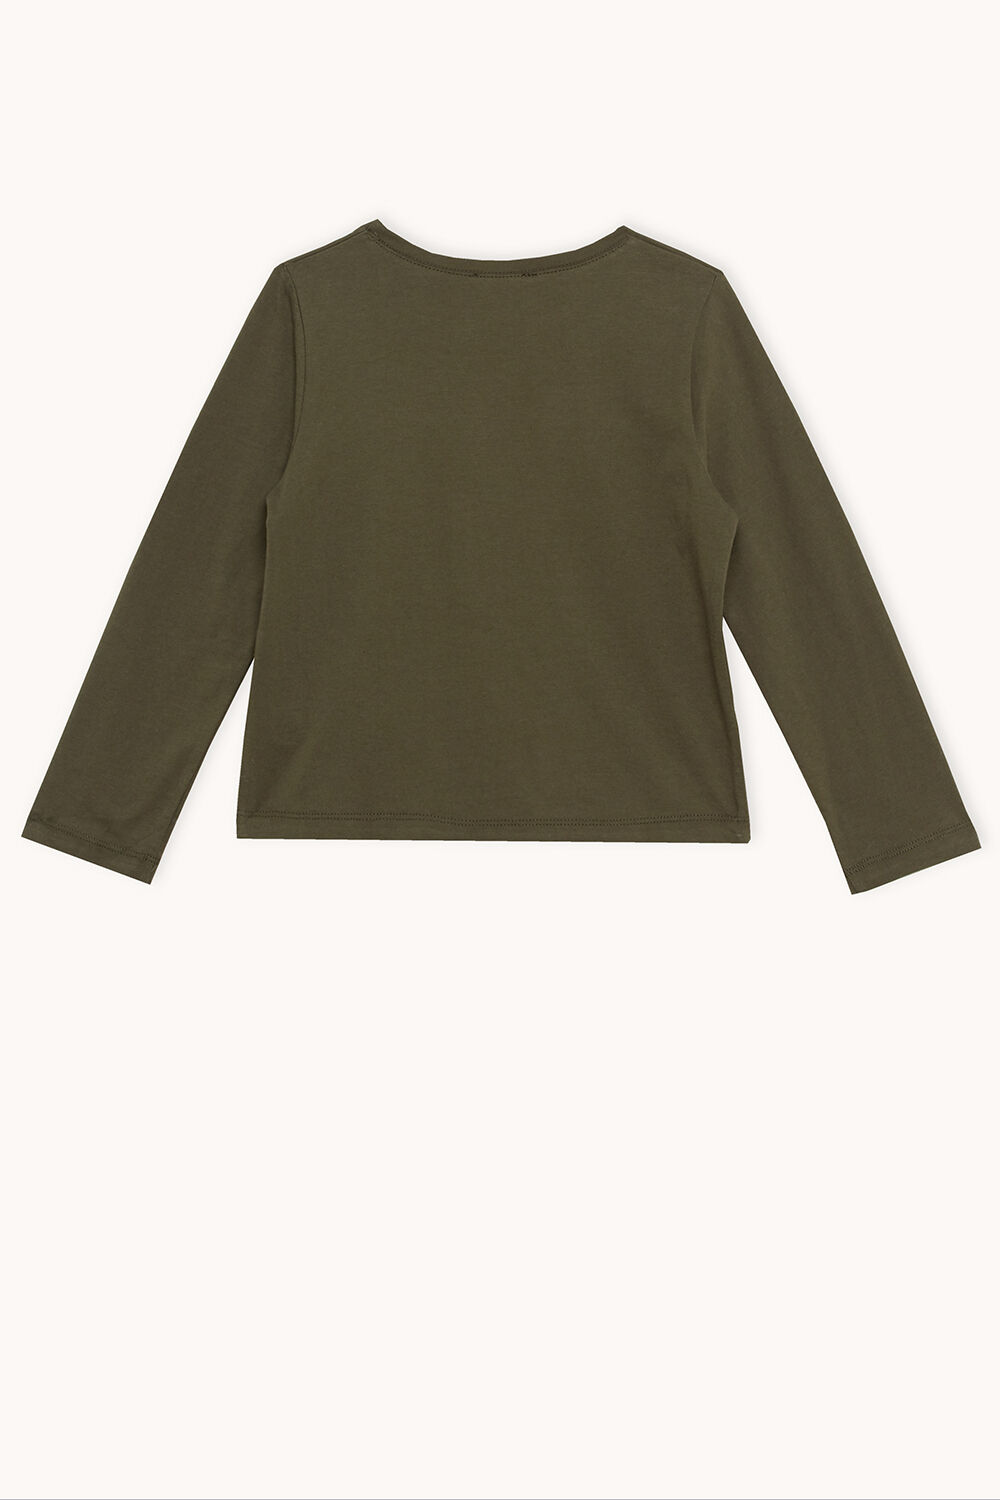 CAMO POCKET TOP in colour COVERT GREEN